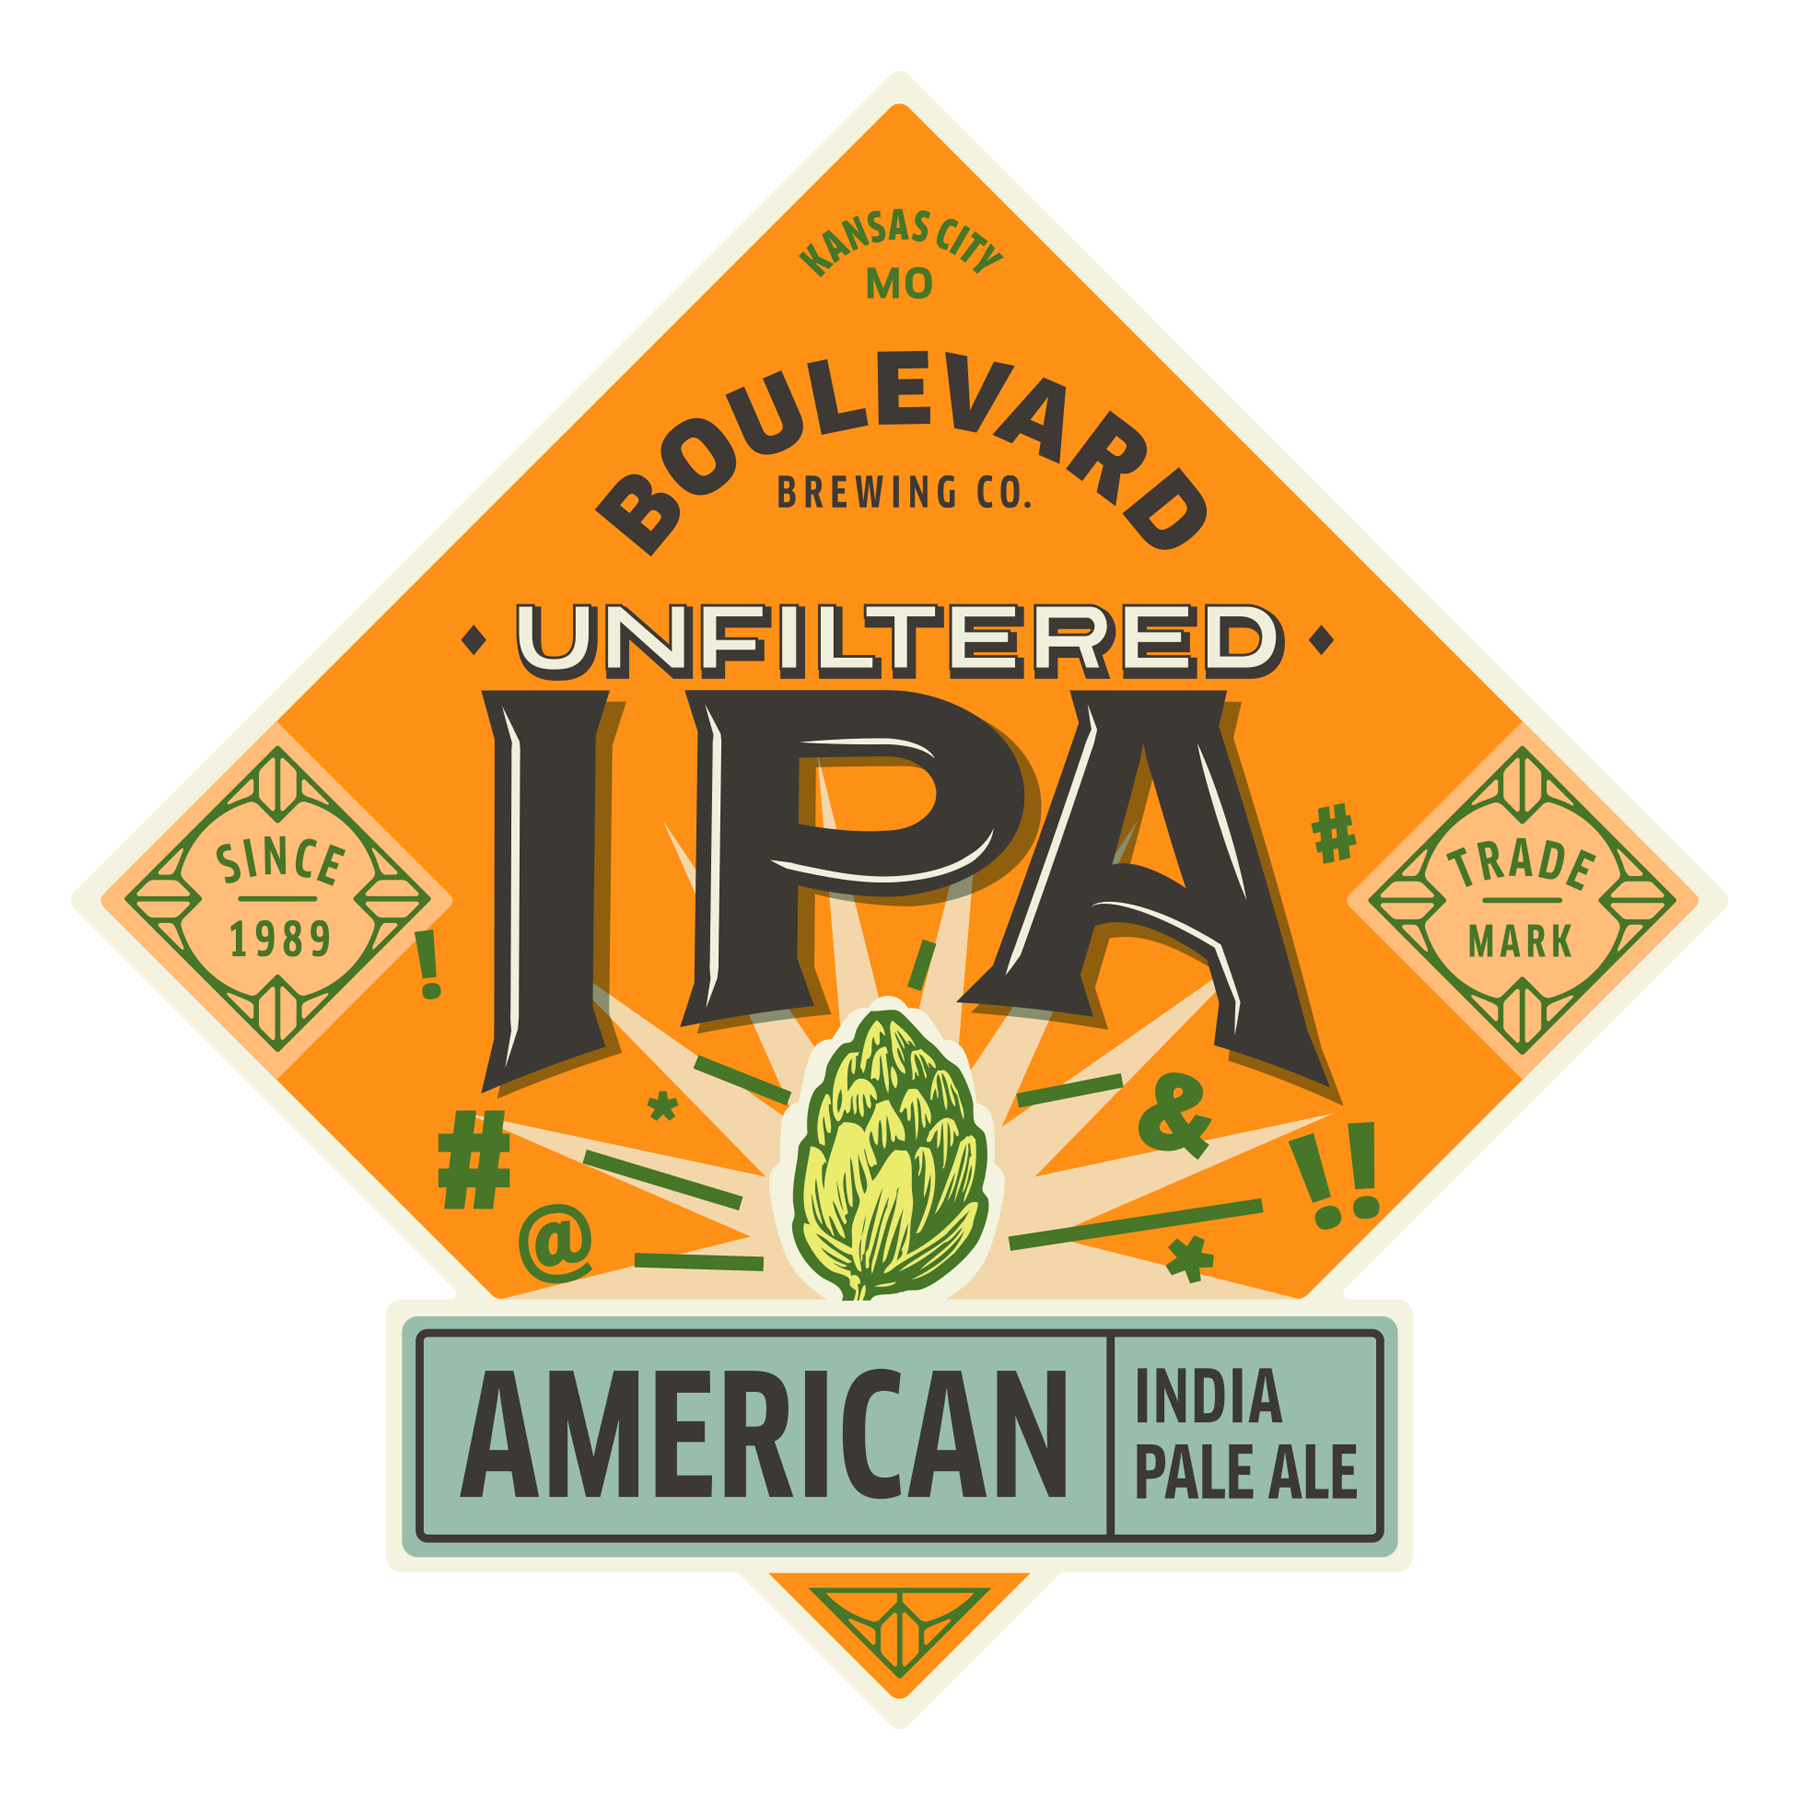 Unfiltered IPA